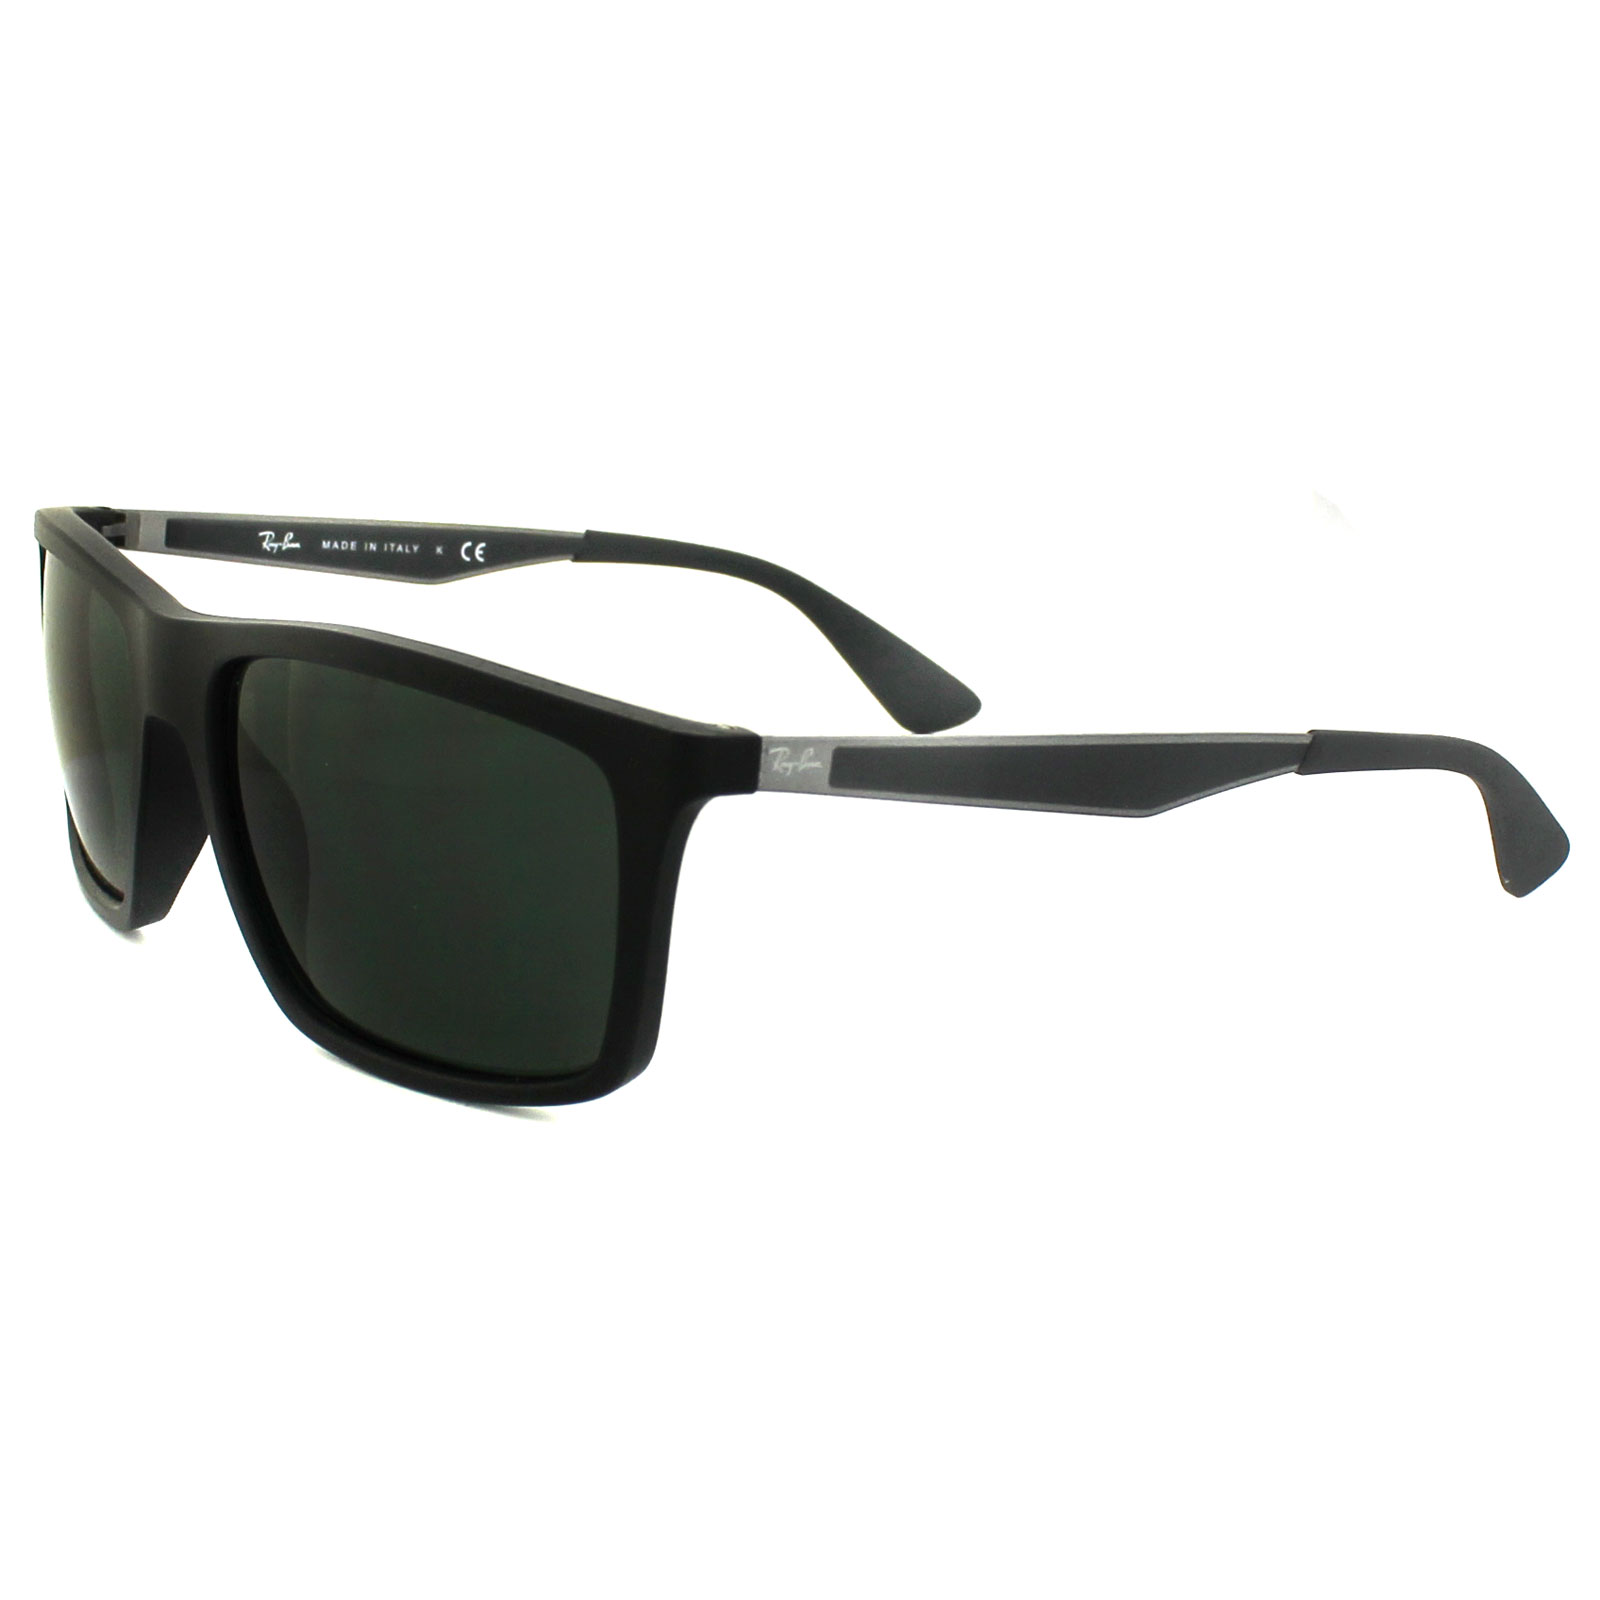 Cheap Ray-Ban 4228 Sunglasses - Discounted Sunglasses